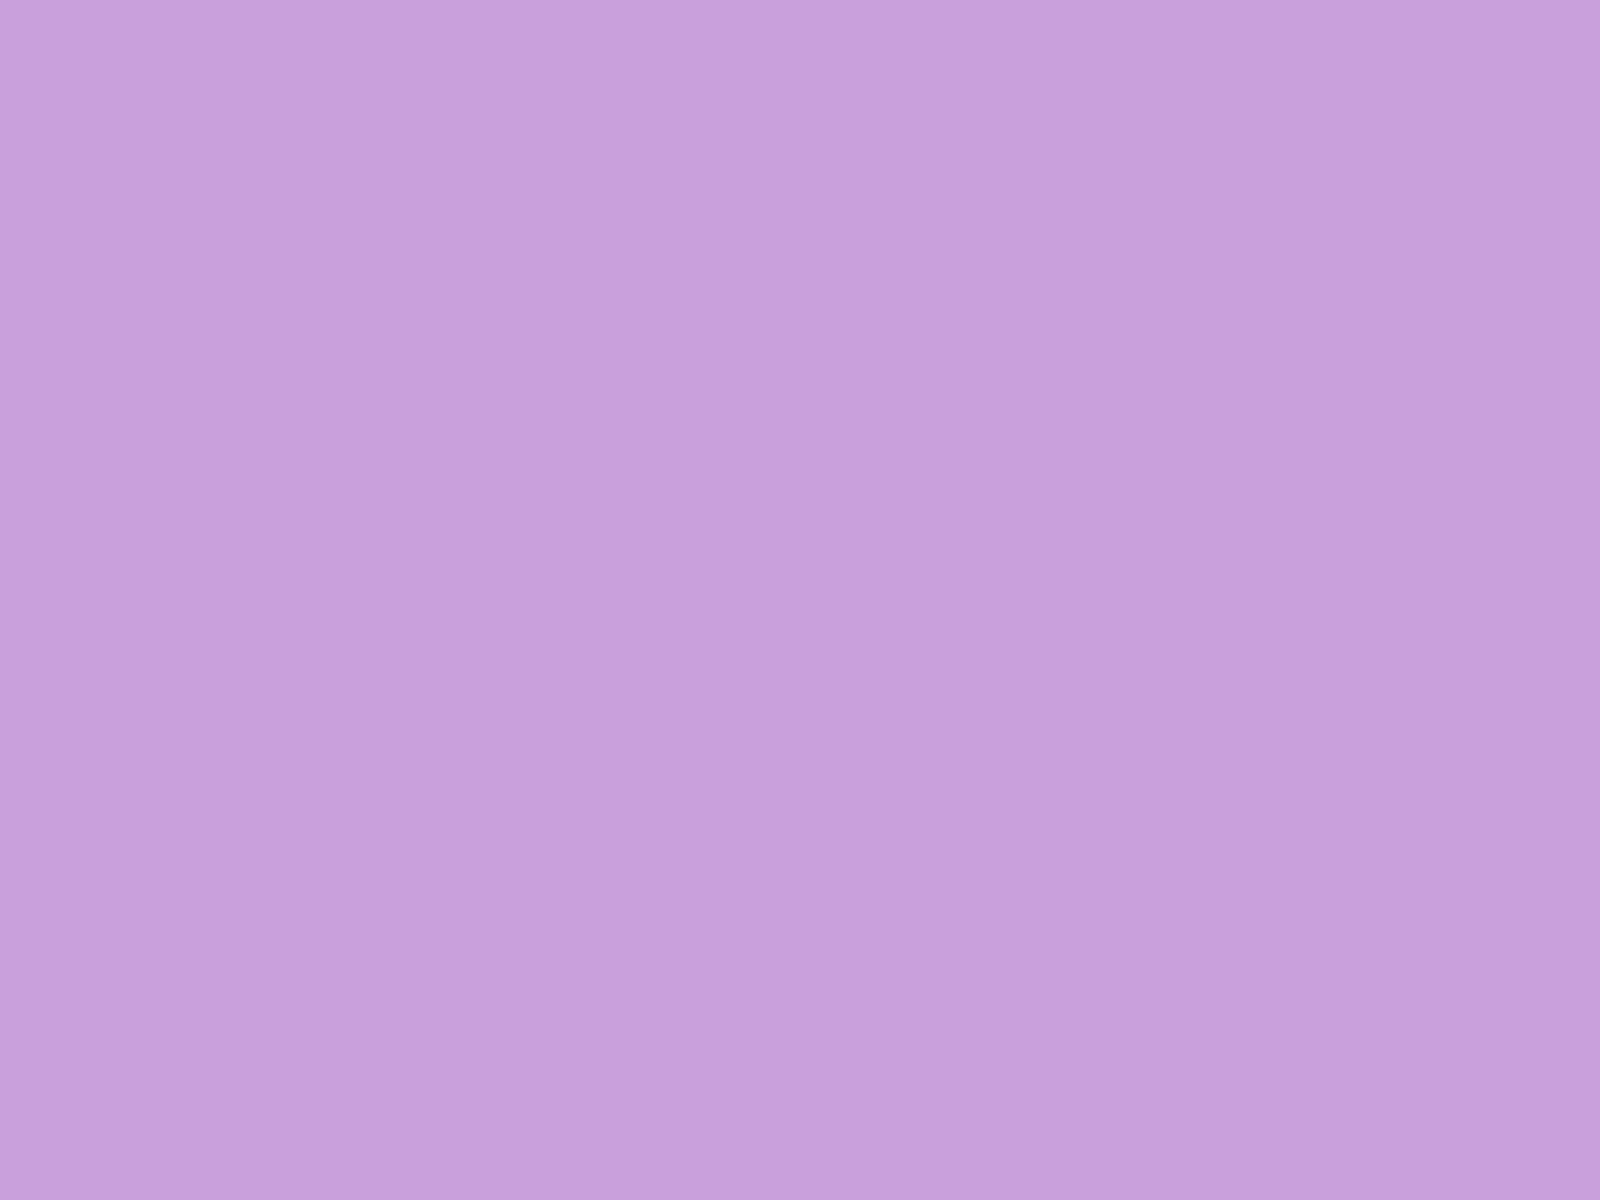 1600x1200 Wisteria Solid Color Background